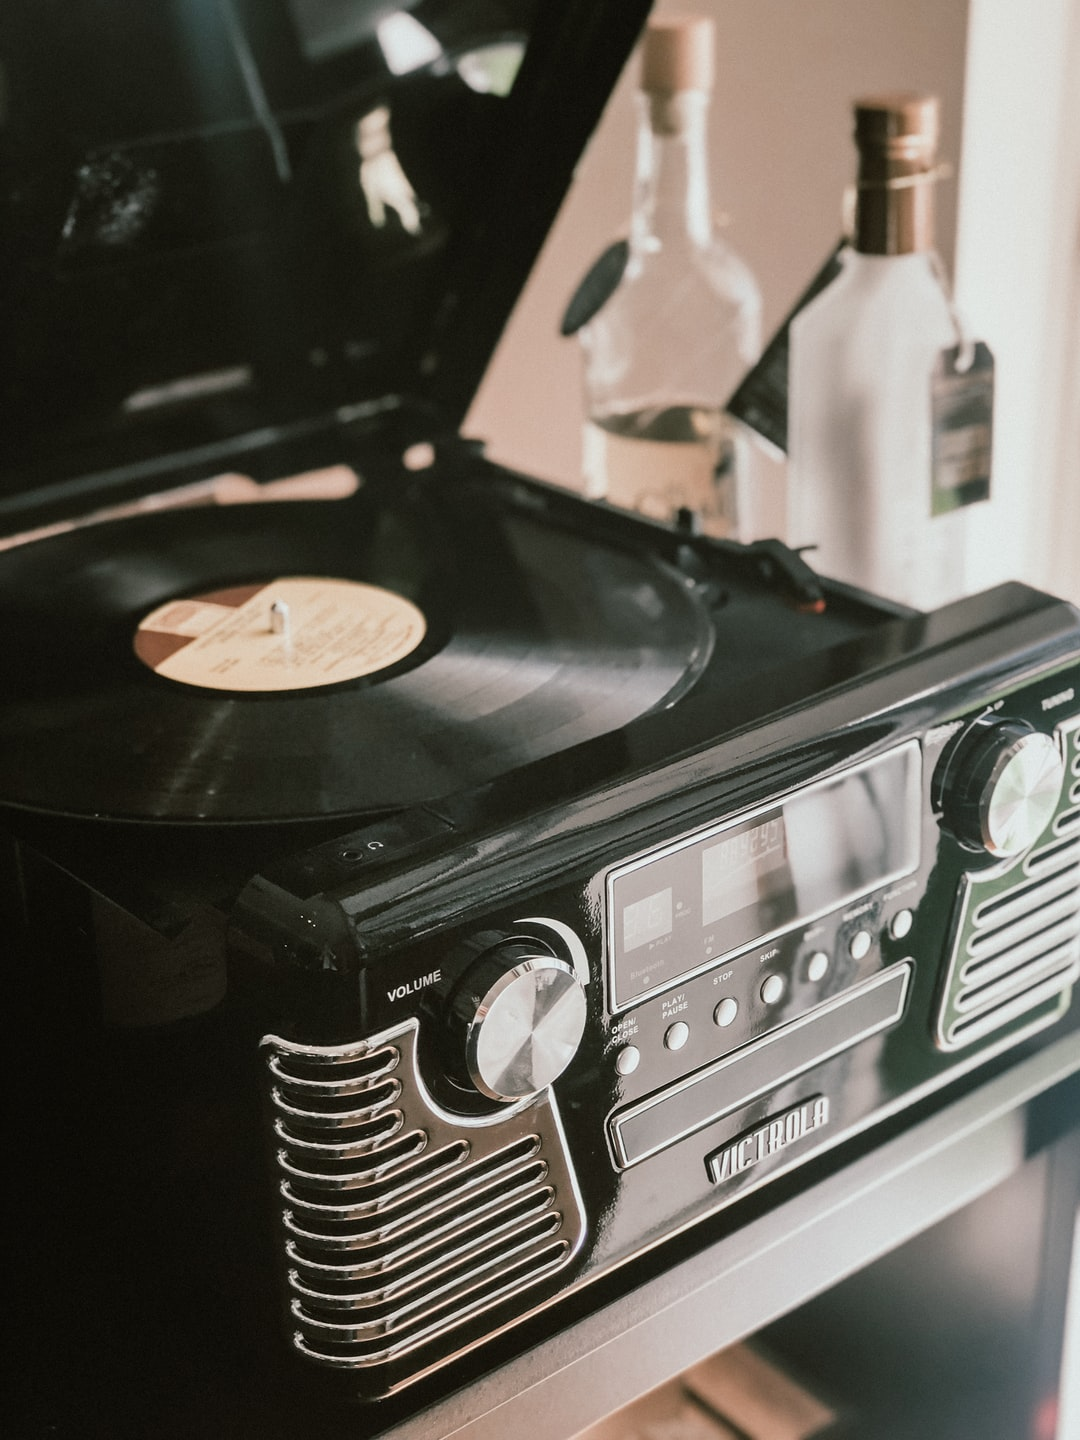 Photo by Victrola Record Players on Unsplash